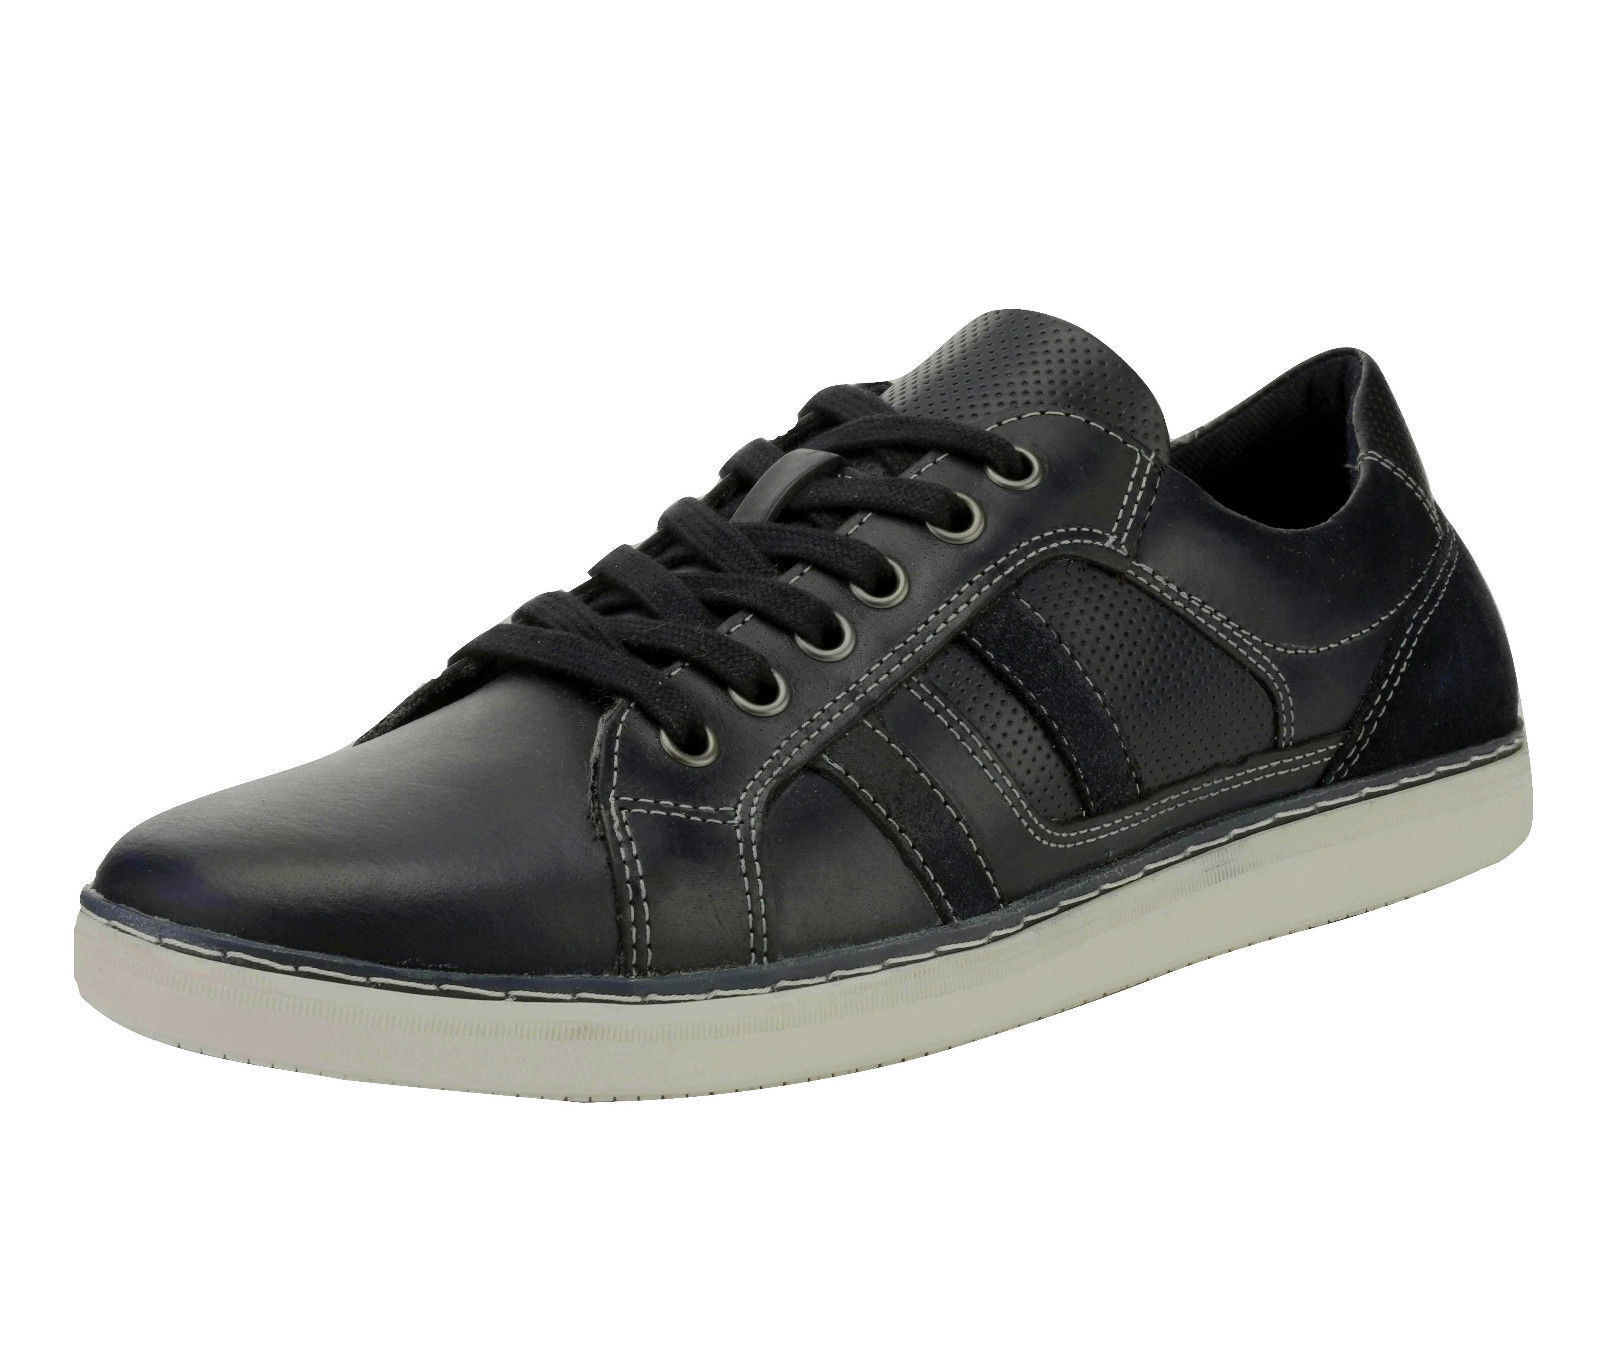 new Leather MEN'S Red Tape CUMBER Leather new Italian Style Casual Shoes Navy UK size 9 eb8c42